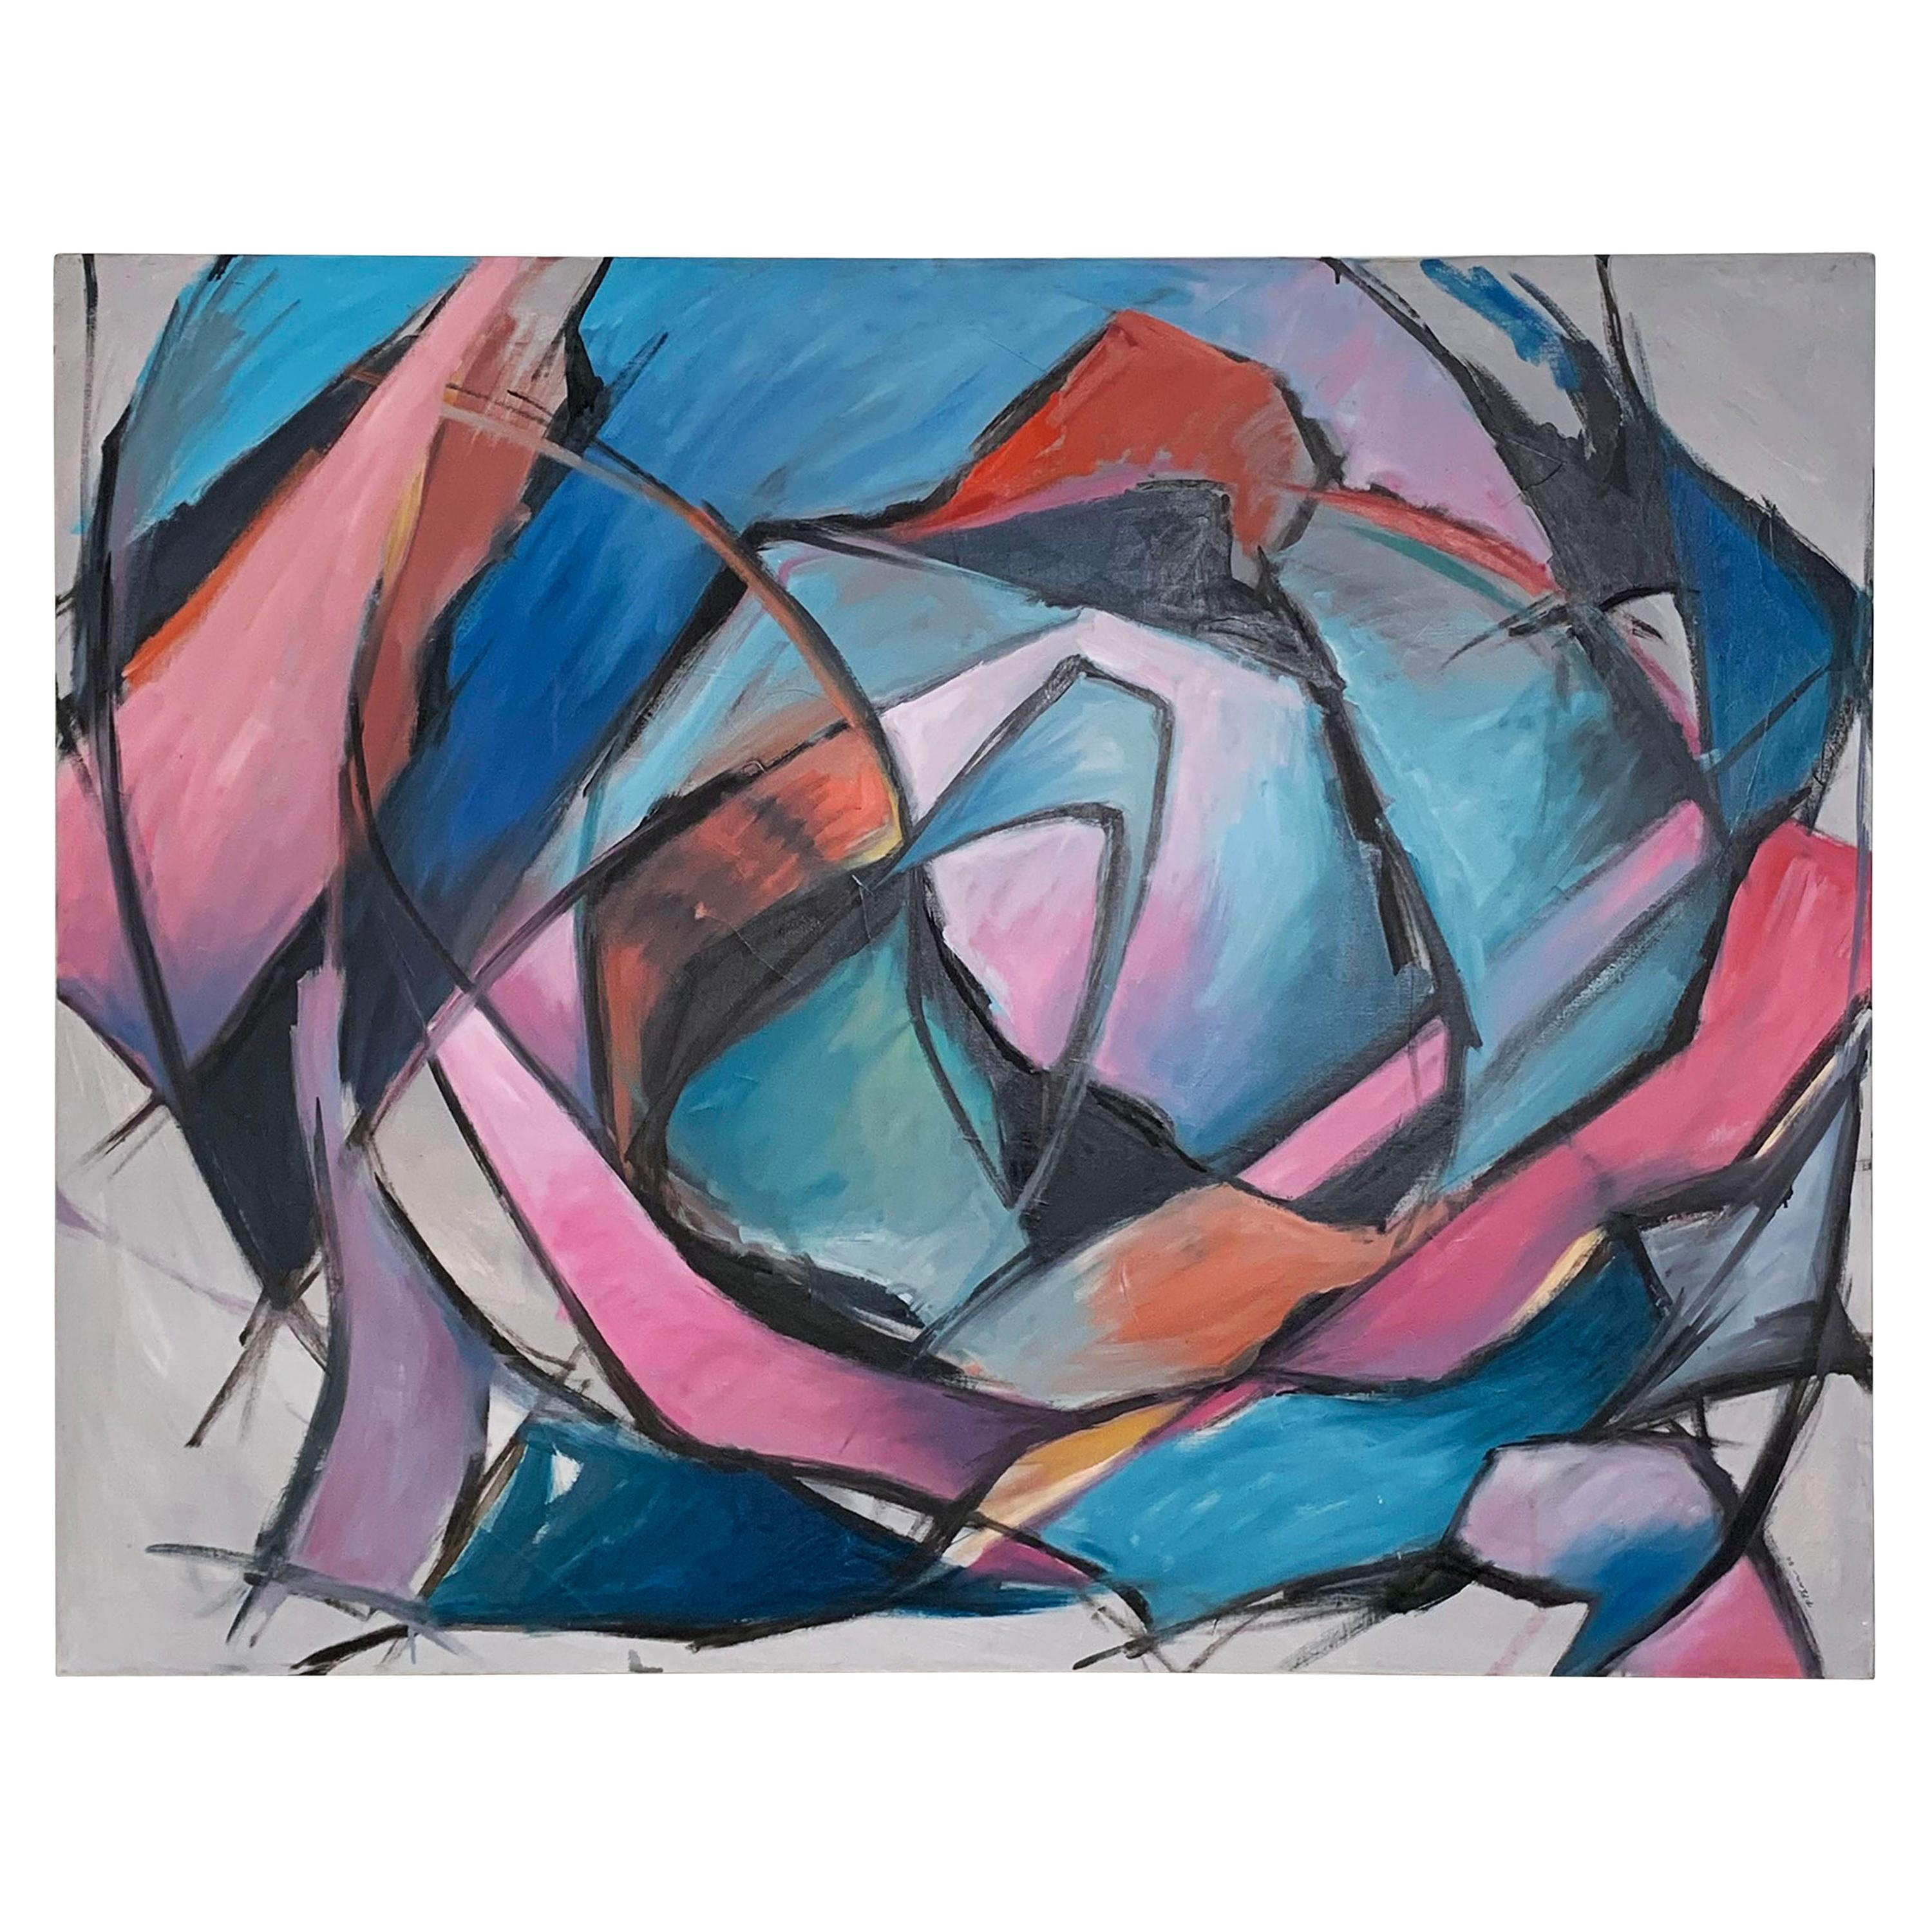 Large Vibrant Abstract Postmodern Painting by Phuc Phan, Dated 1986